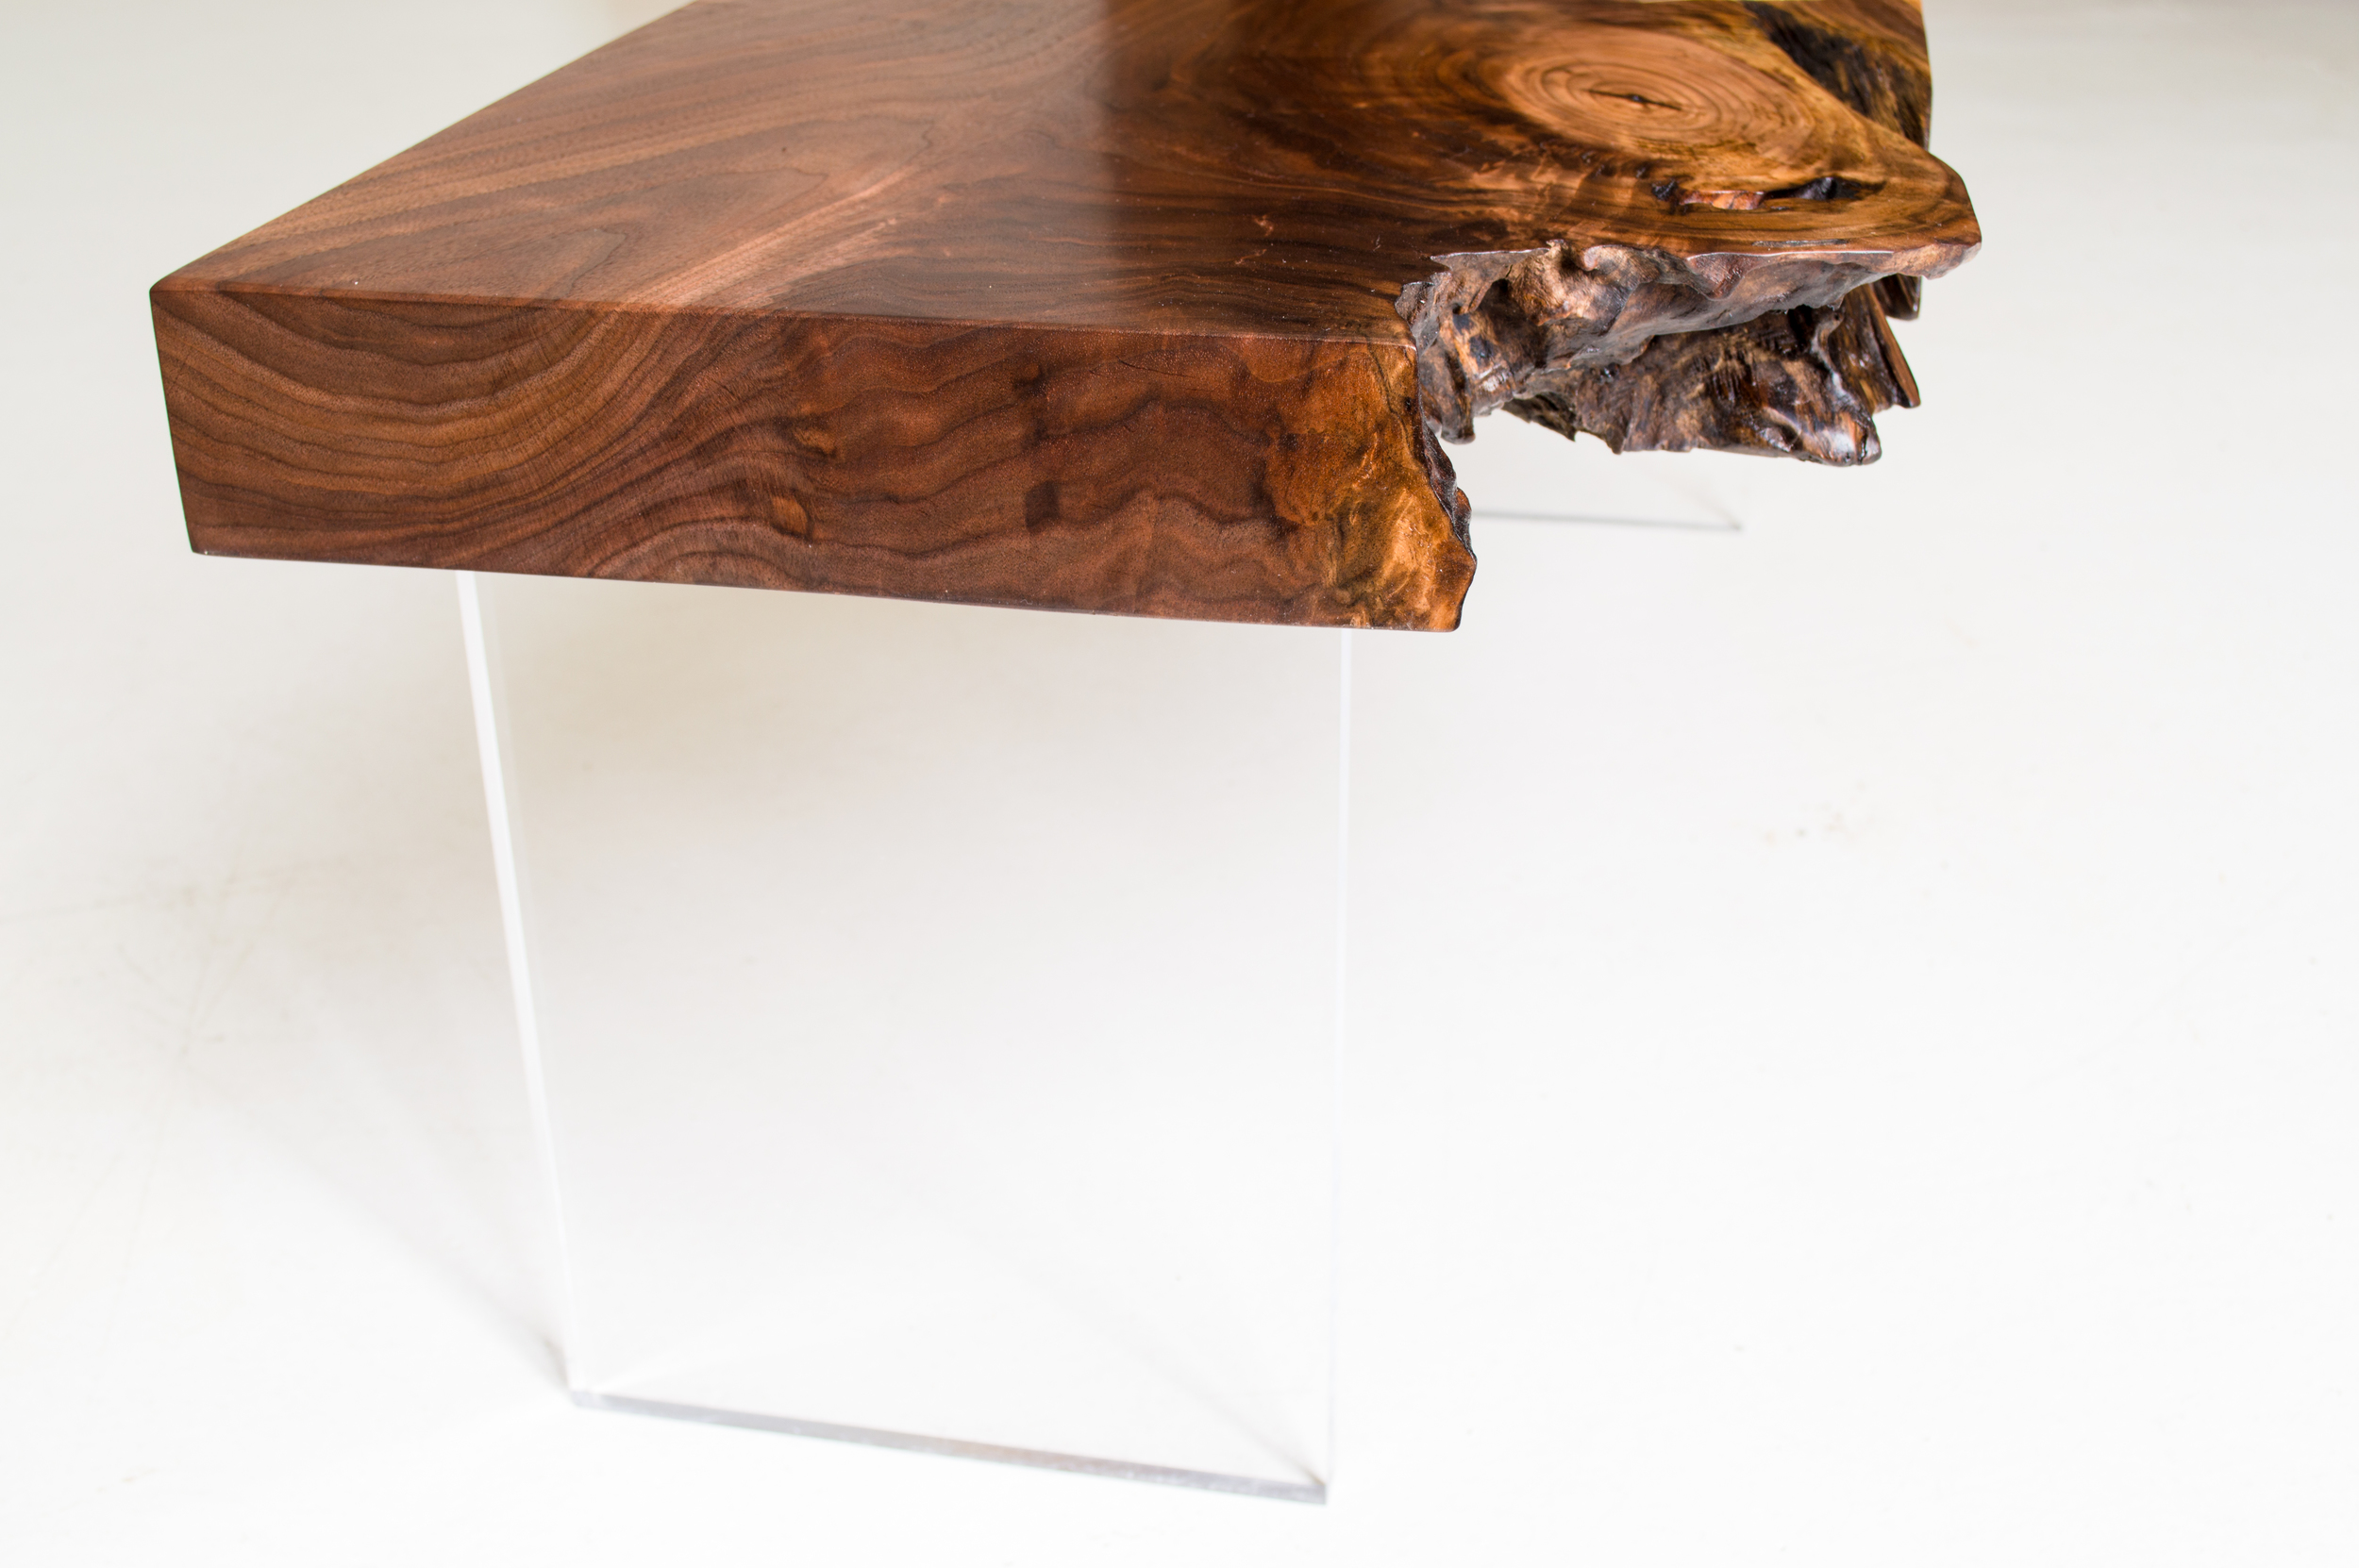 Walnut and Acrylic Low Table (detail)